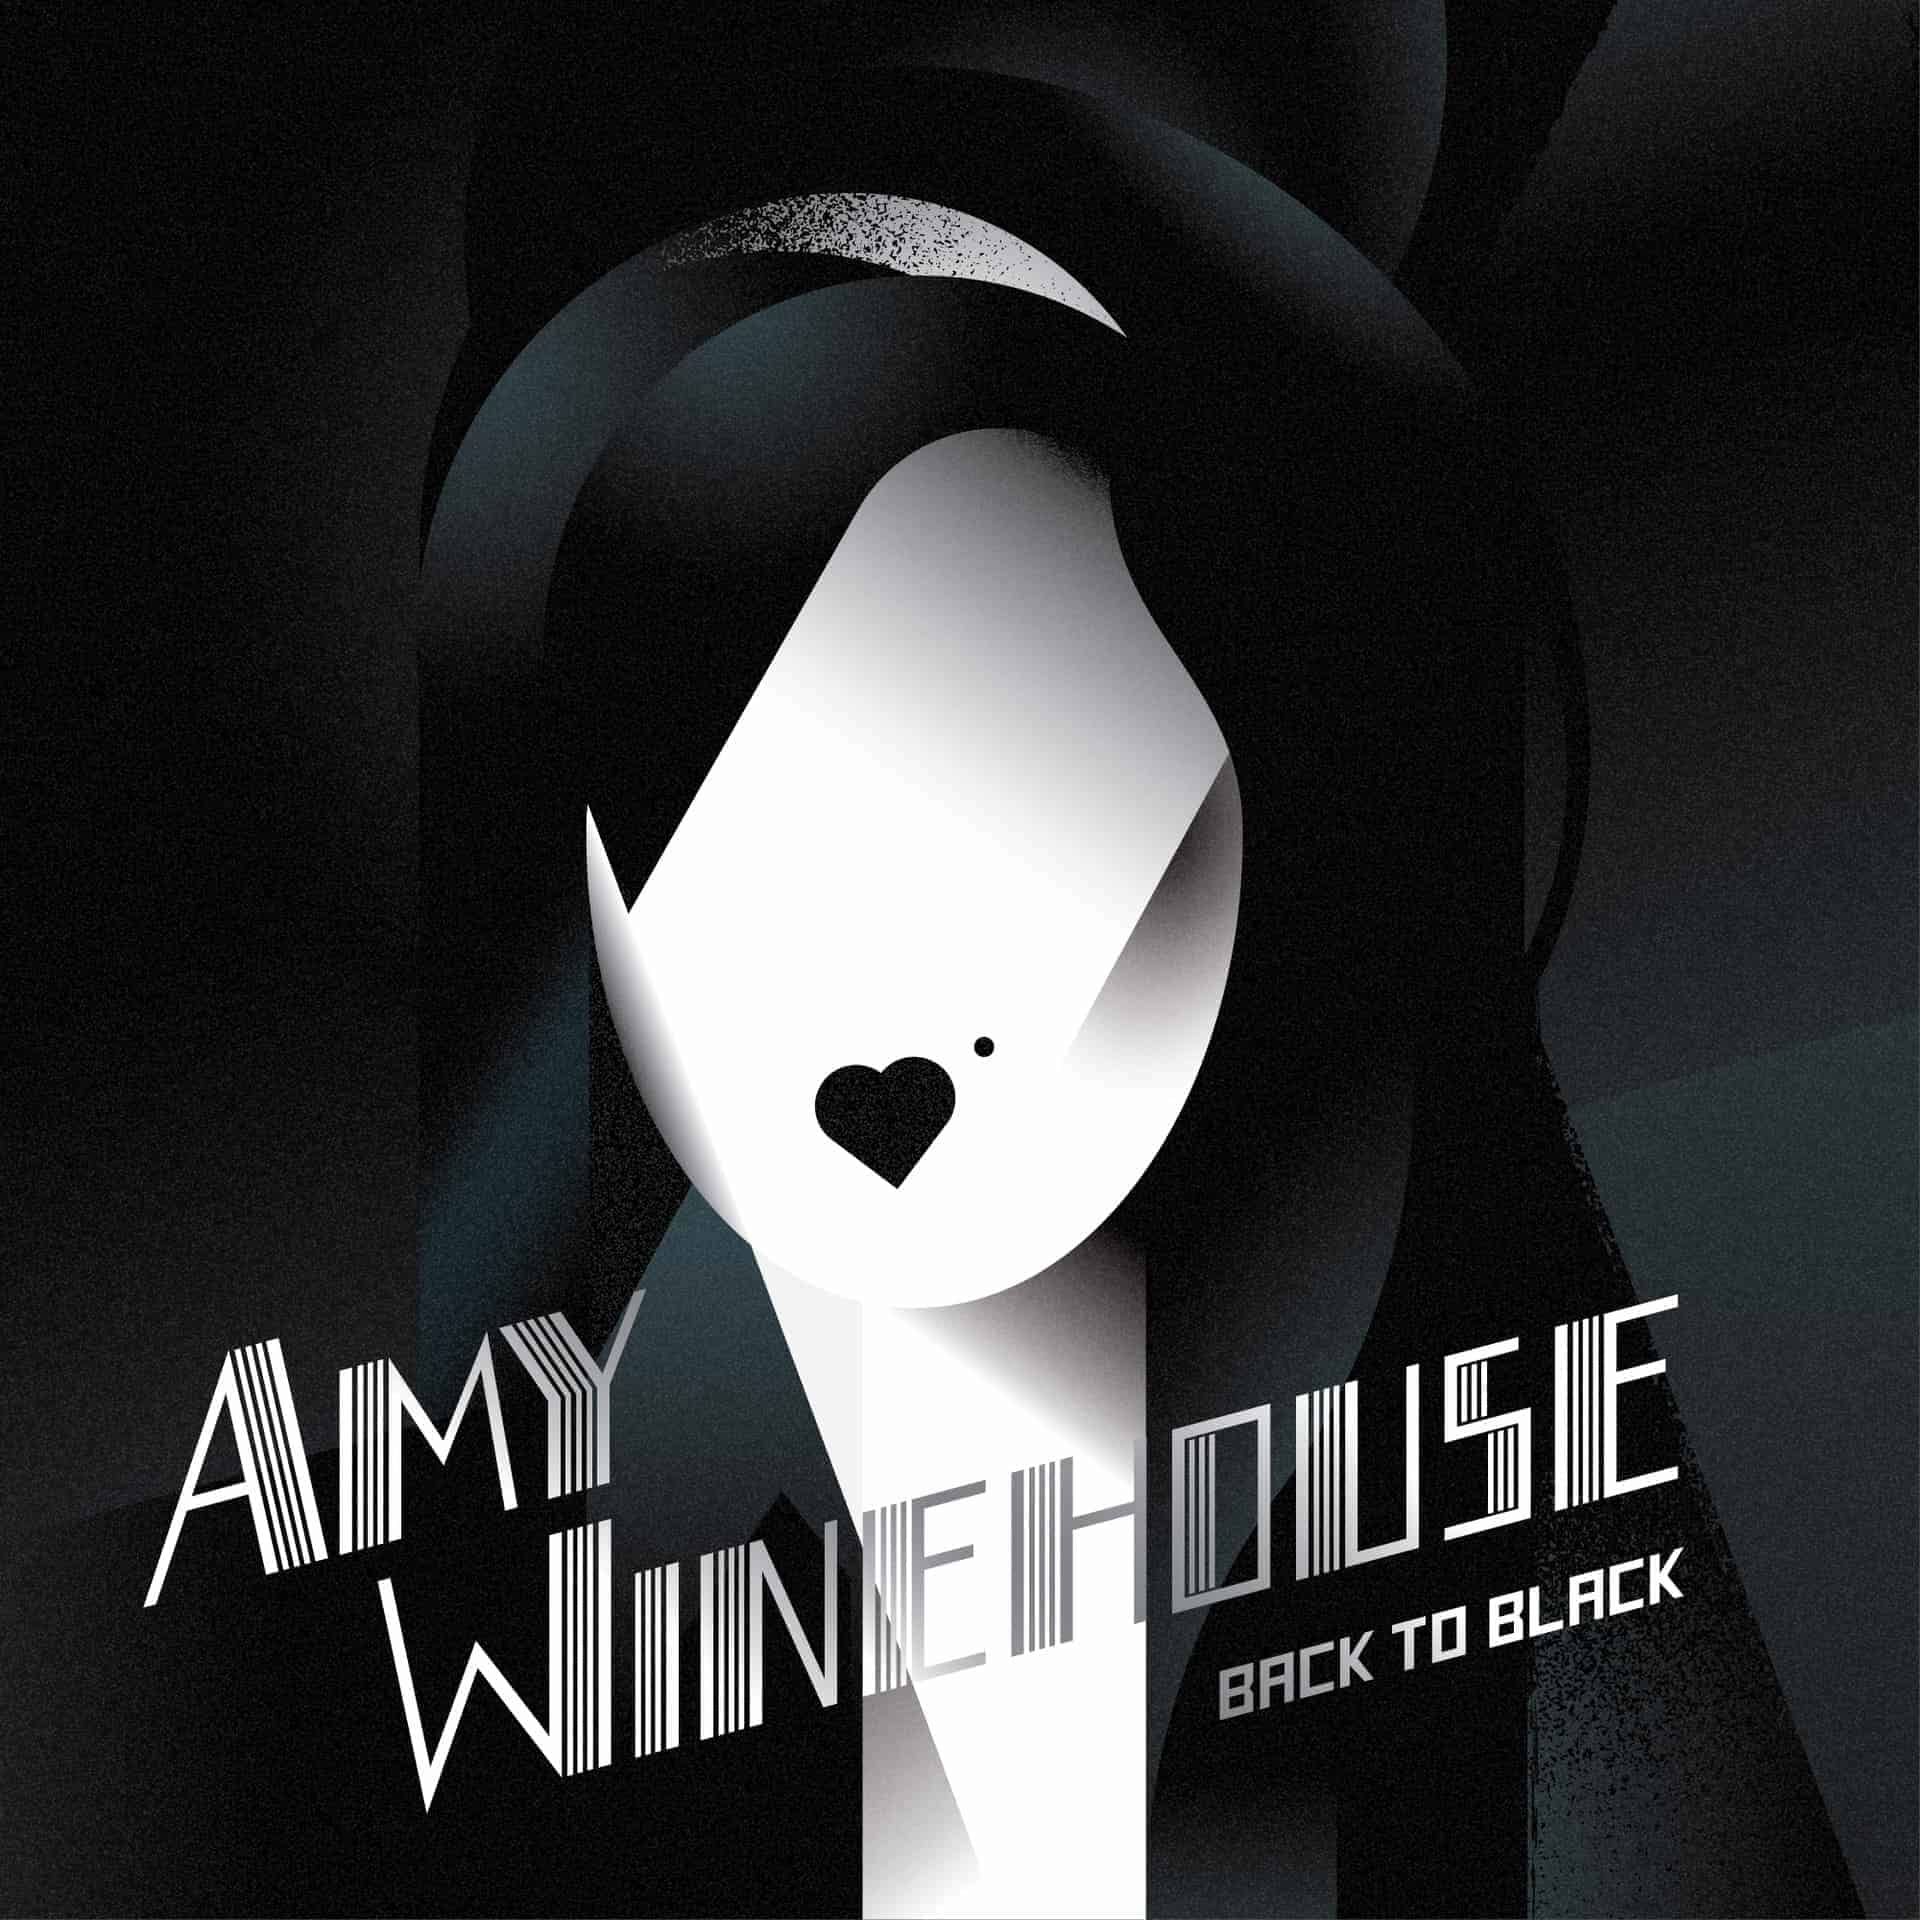 The Redesign of the Legendary 'BACK to BLACK' Record Cover of Amy Winehouse